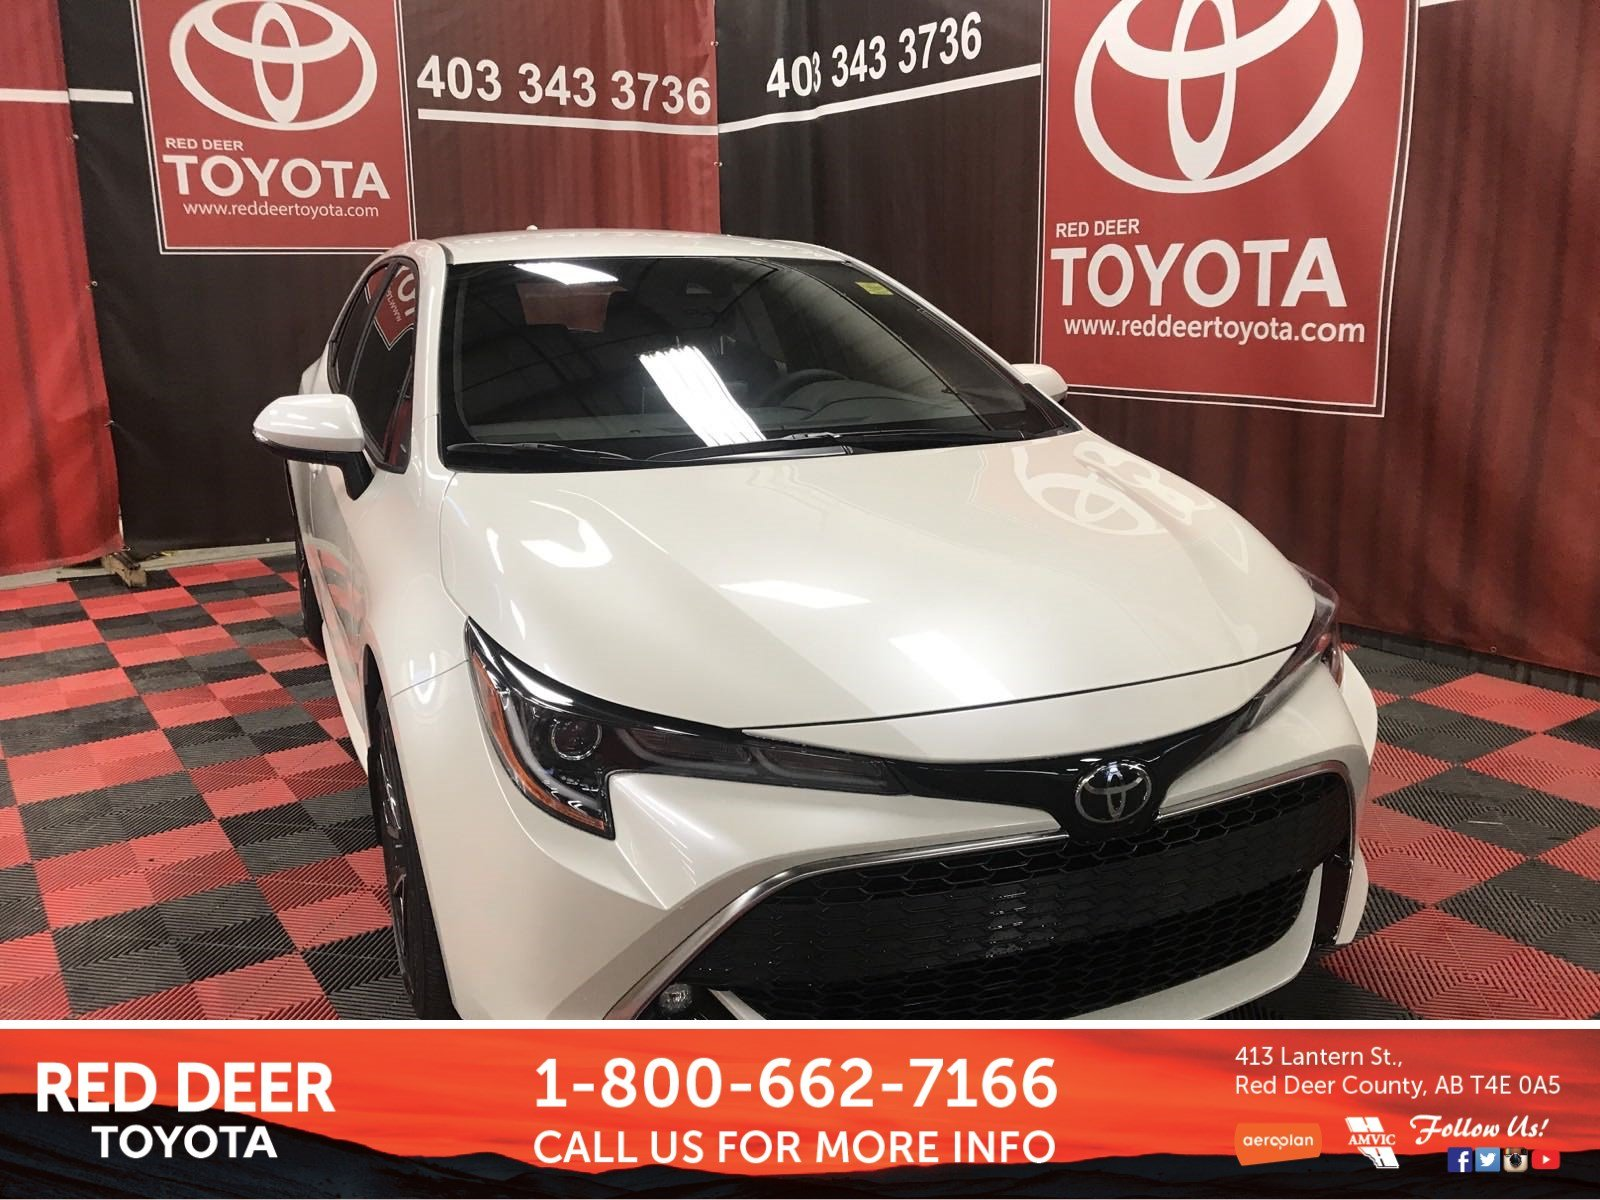 New 2019 Toyota Corolla Hatchback Xse Hatchback In Red Deer County